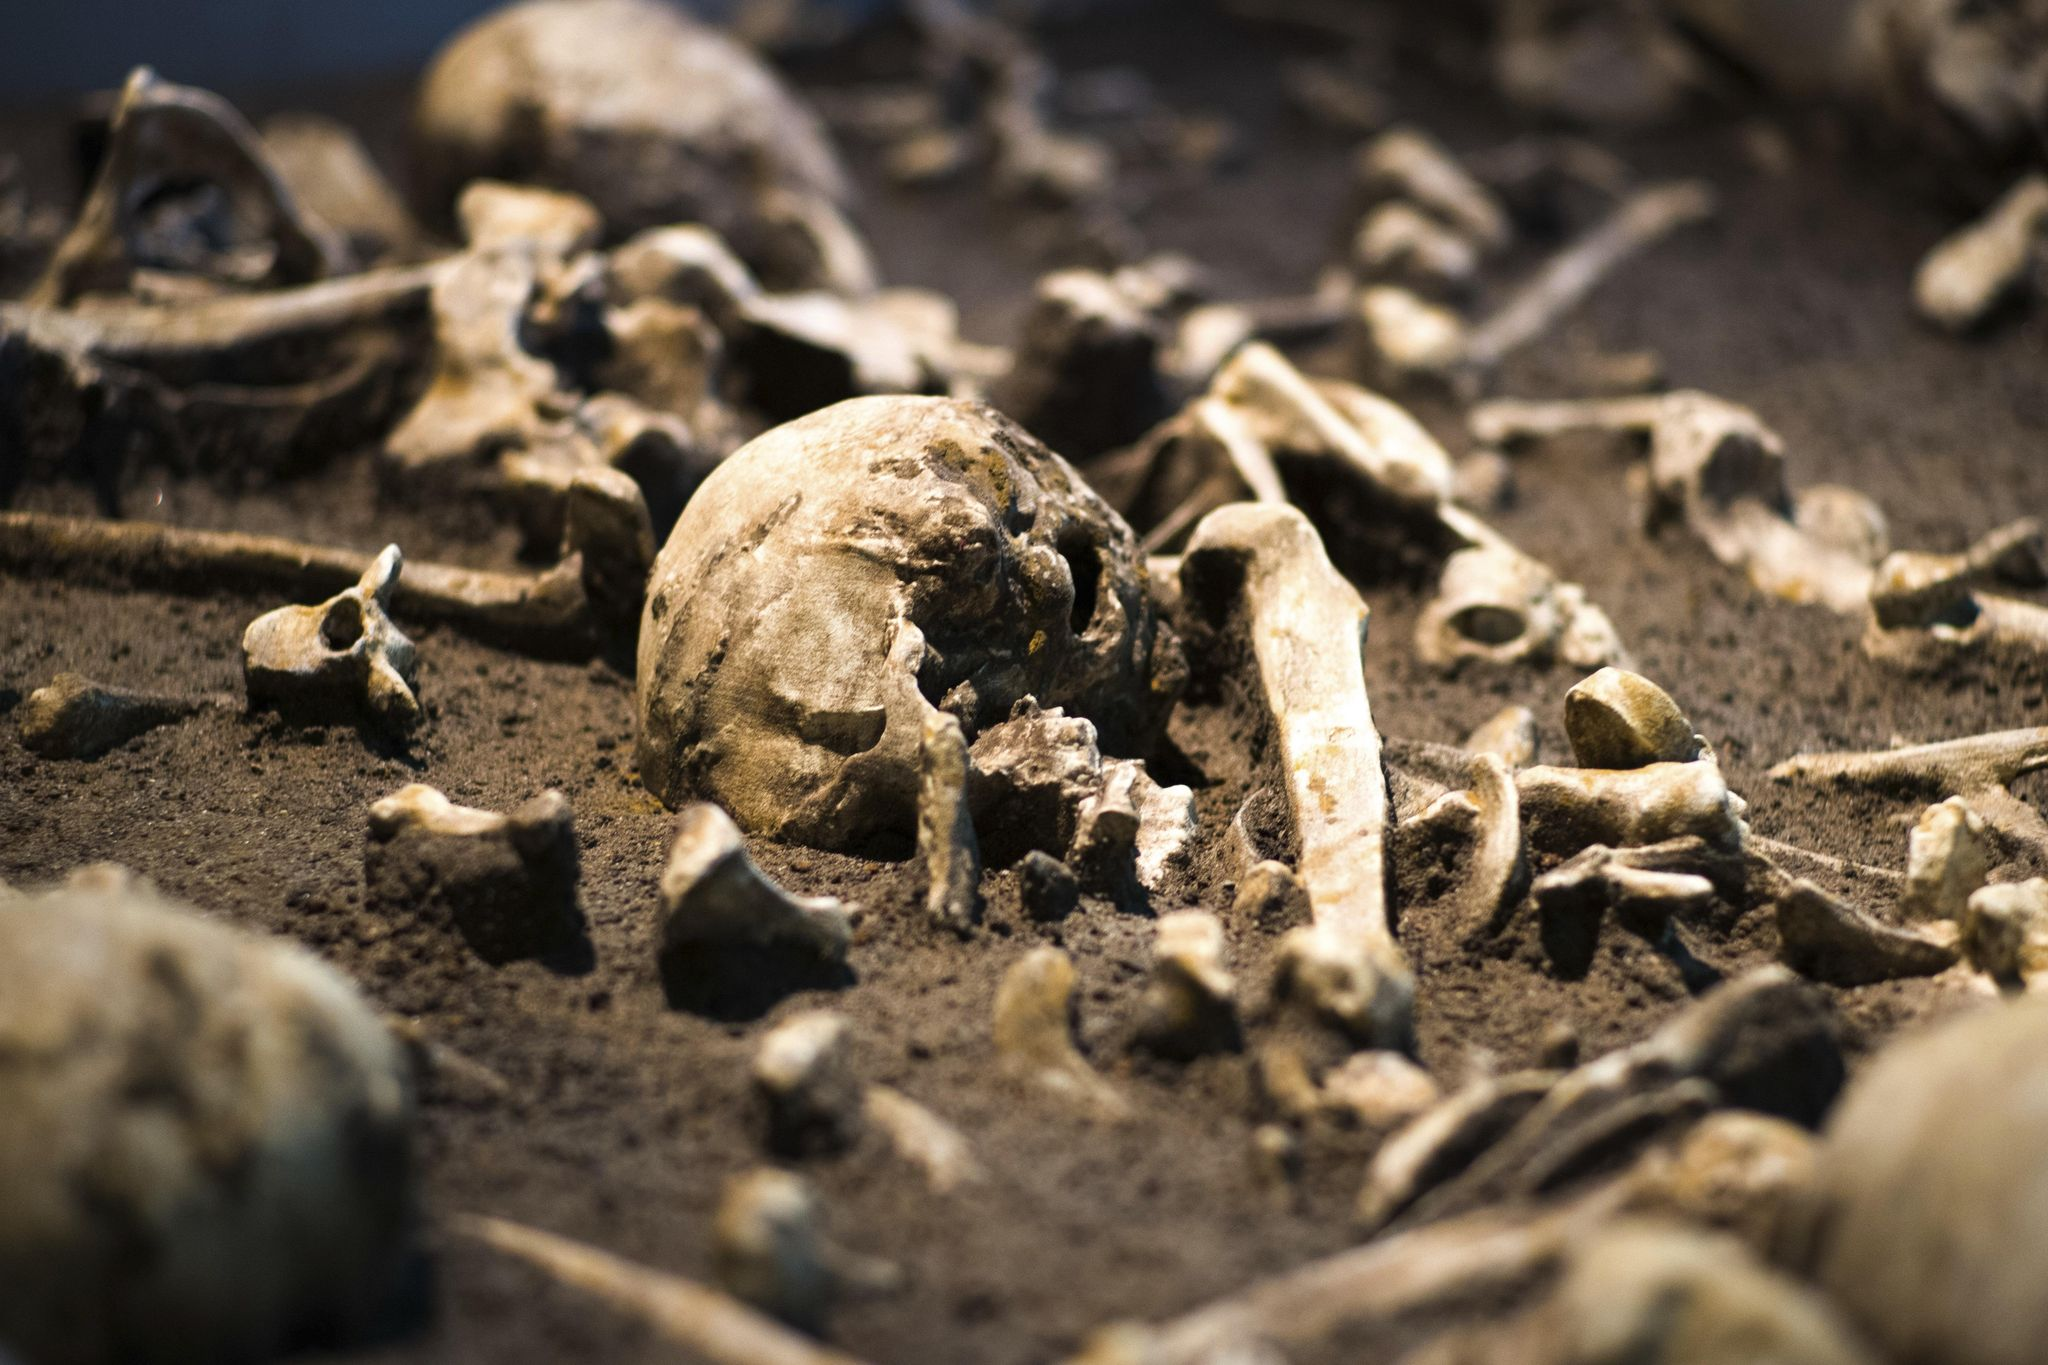 Ancient treasures on show in Germany reveal turbulent past - Washington Times